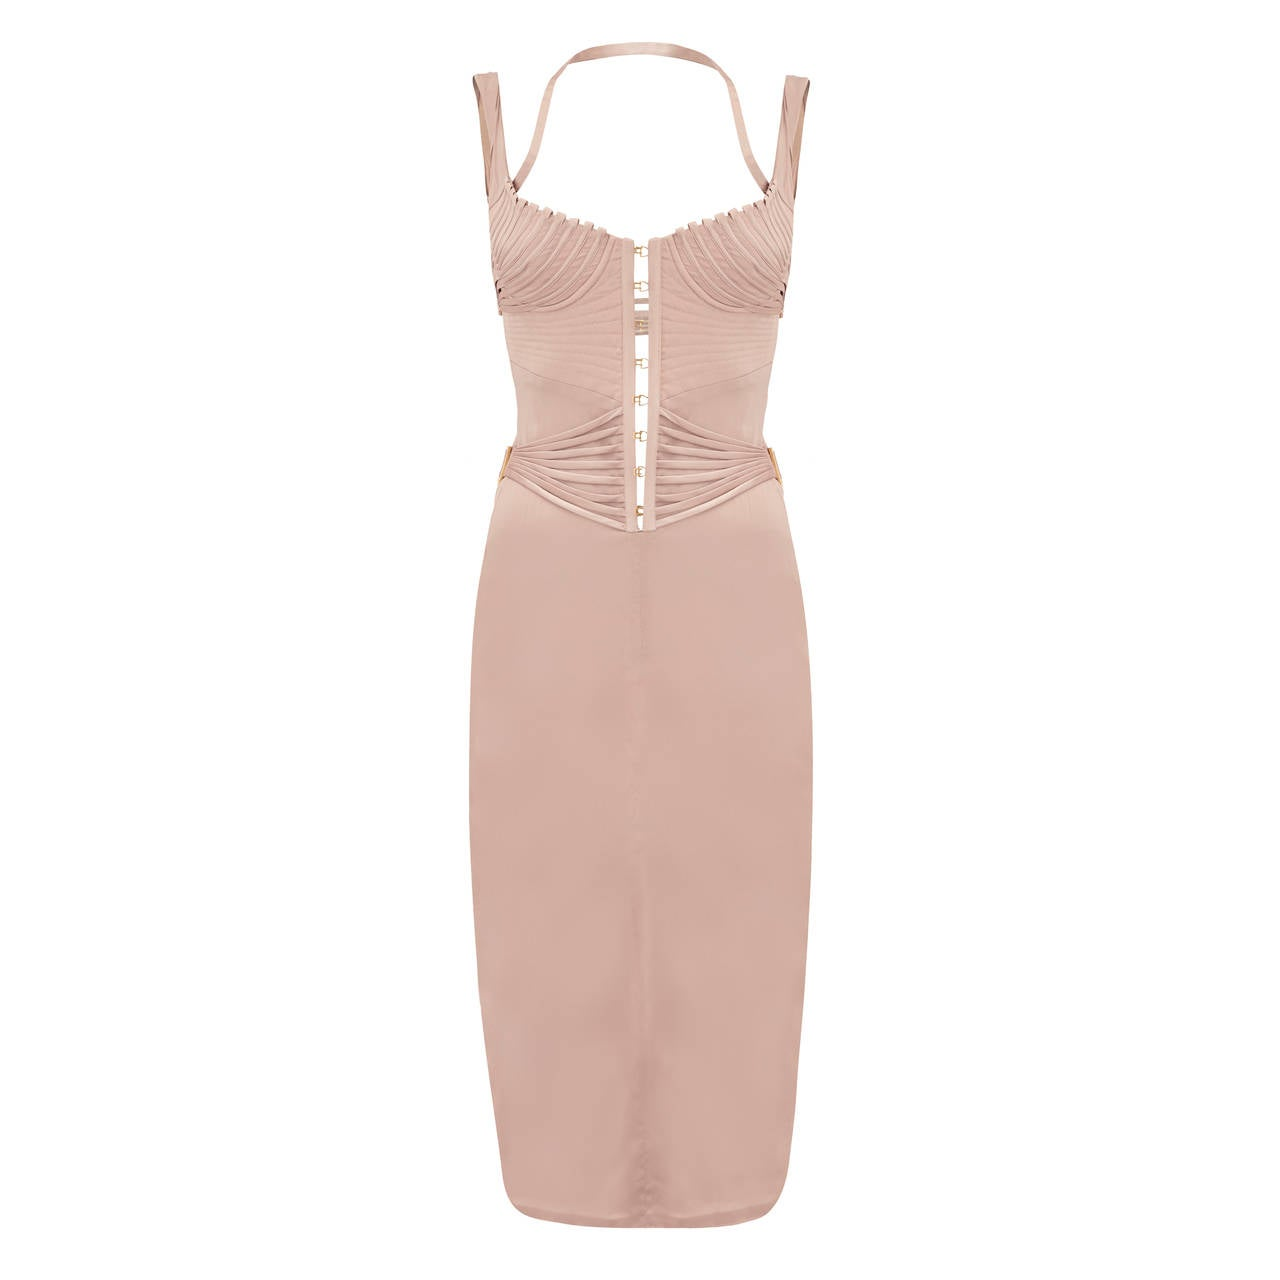 2003 Tom Ford for Gucci Lilac Satin Corset Dress For Sale